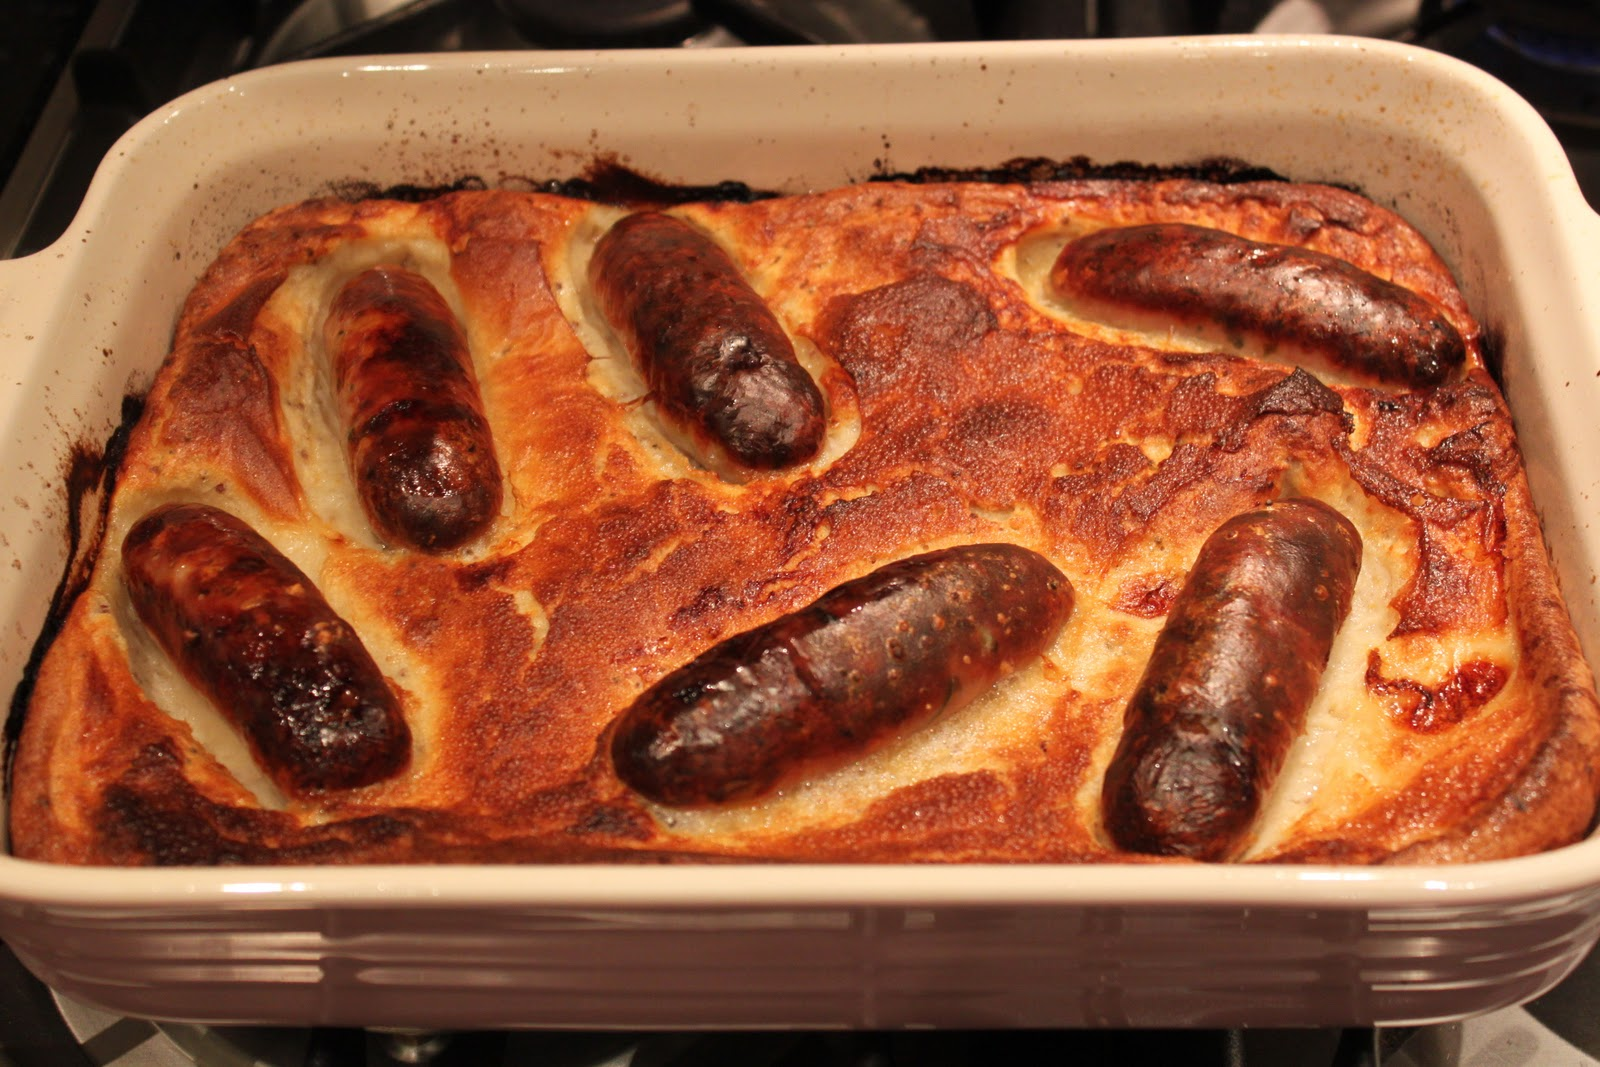 Dine at Mine: Toad in the Hole with Dark Onion Gravy